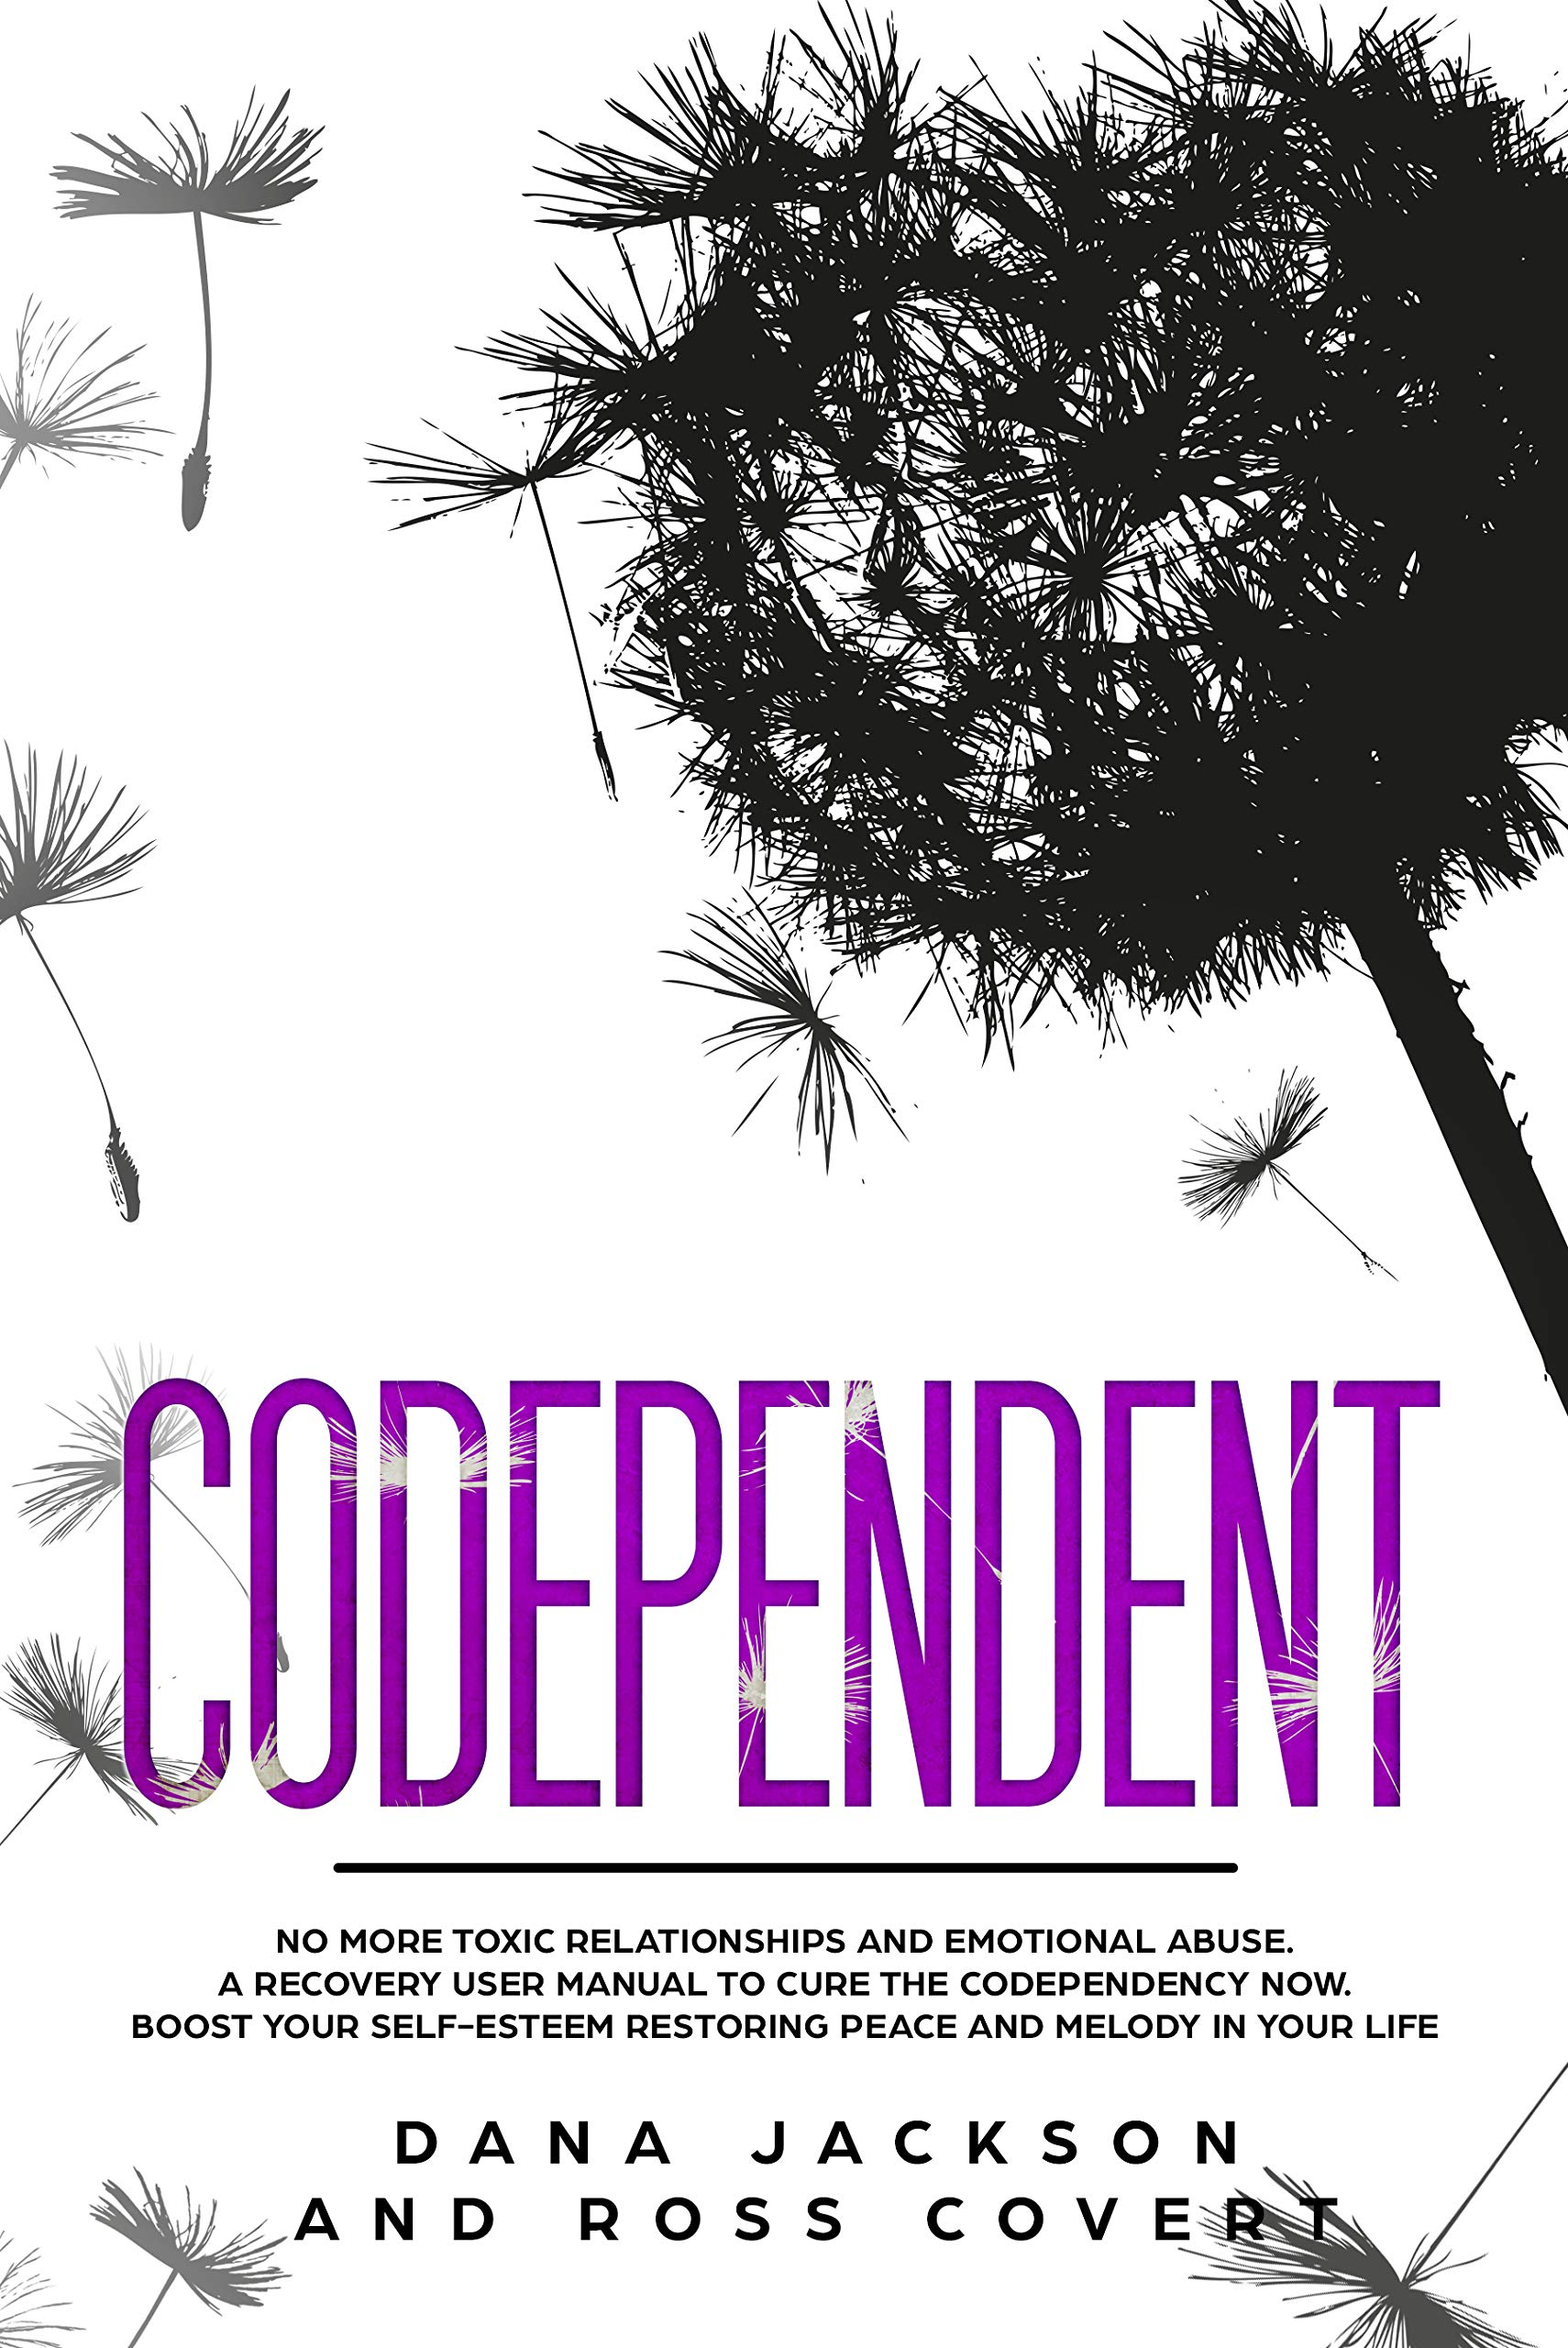 Codependent  No More Toxic Relationships And Emotional Abuse. A Recovery User Manual To Cure Codependency Now. Boost Your Self Esteem Restoring Peace And Melody In Your Life  English Edition